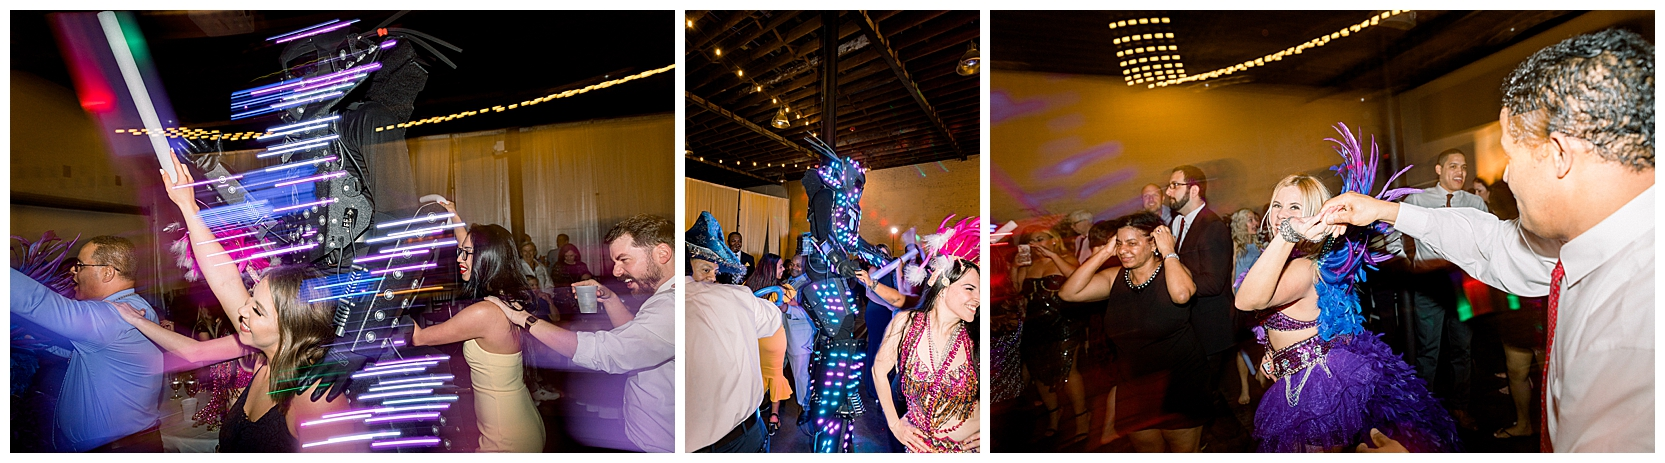 jessicafredericks_lakeland_tampa_wedding_purple_crazy hour_0096.jpg